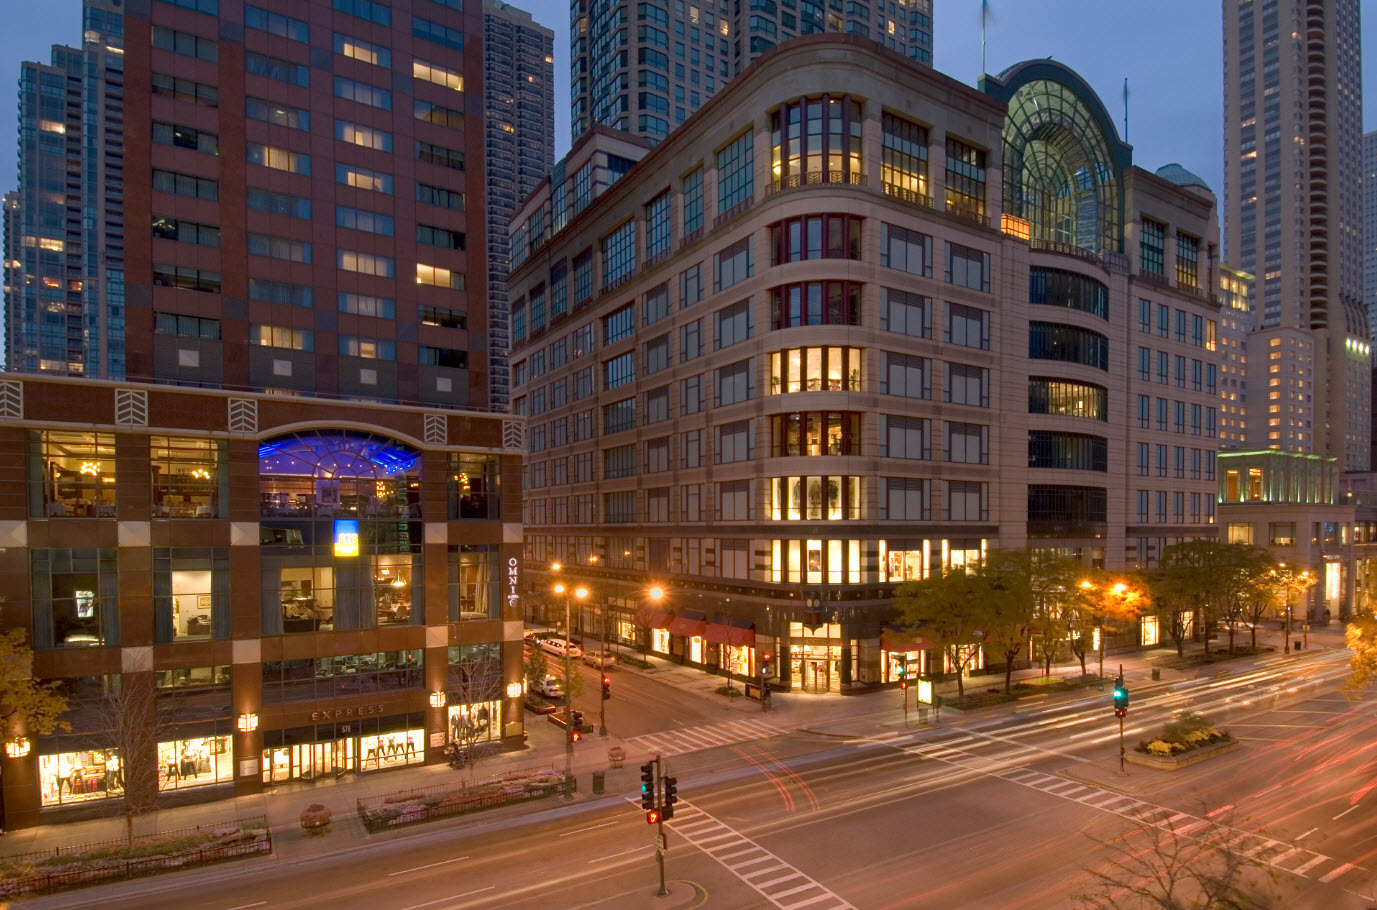 Where to Stay in Chicgao: Omni Chicago Hotel